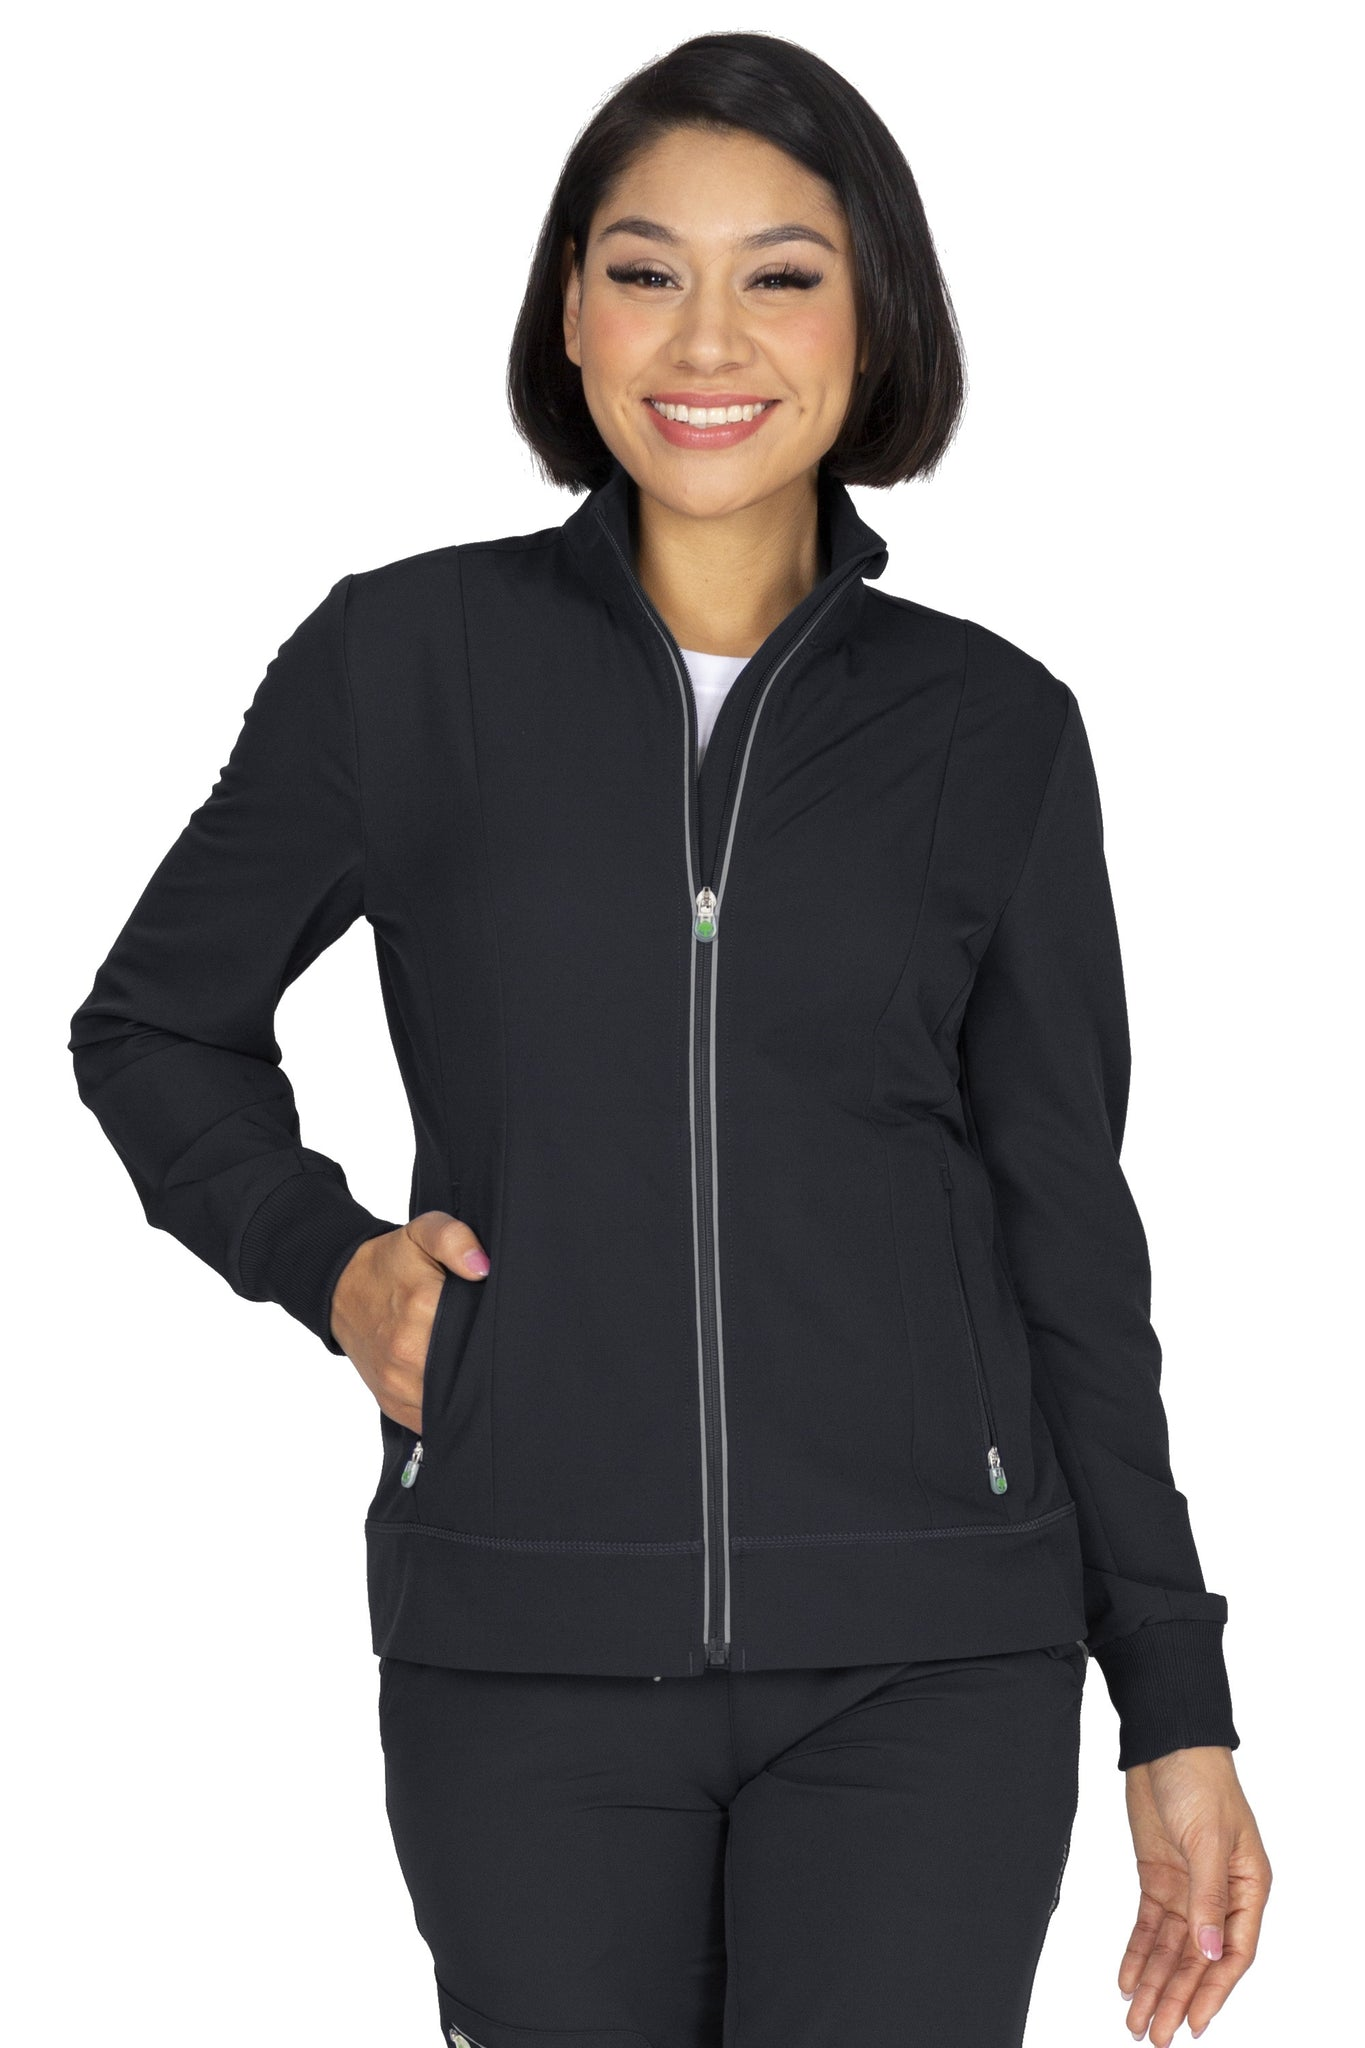 Healing Hands HH360 Carly Scrub Jacket 5067 Black  Athletic Fit - Parker's Clothing and Shoes